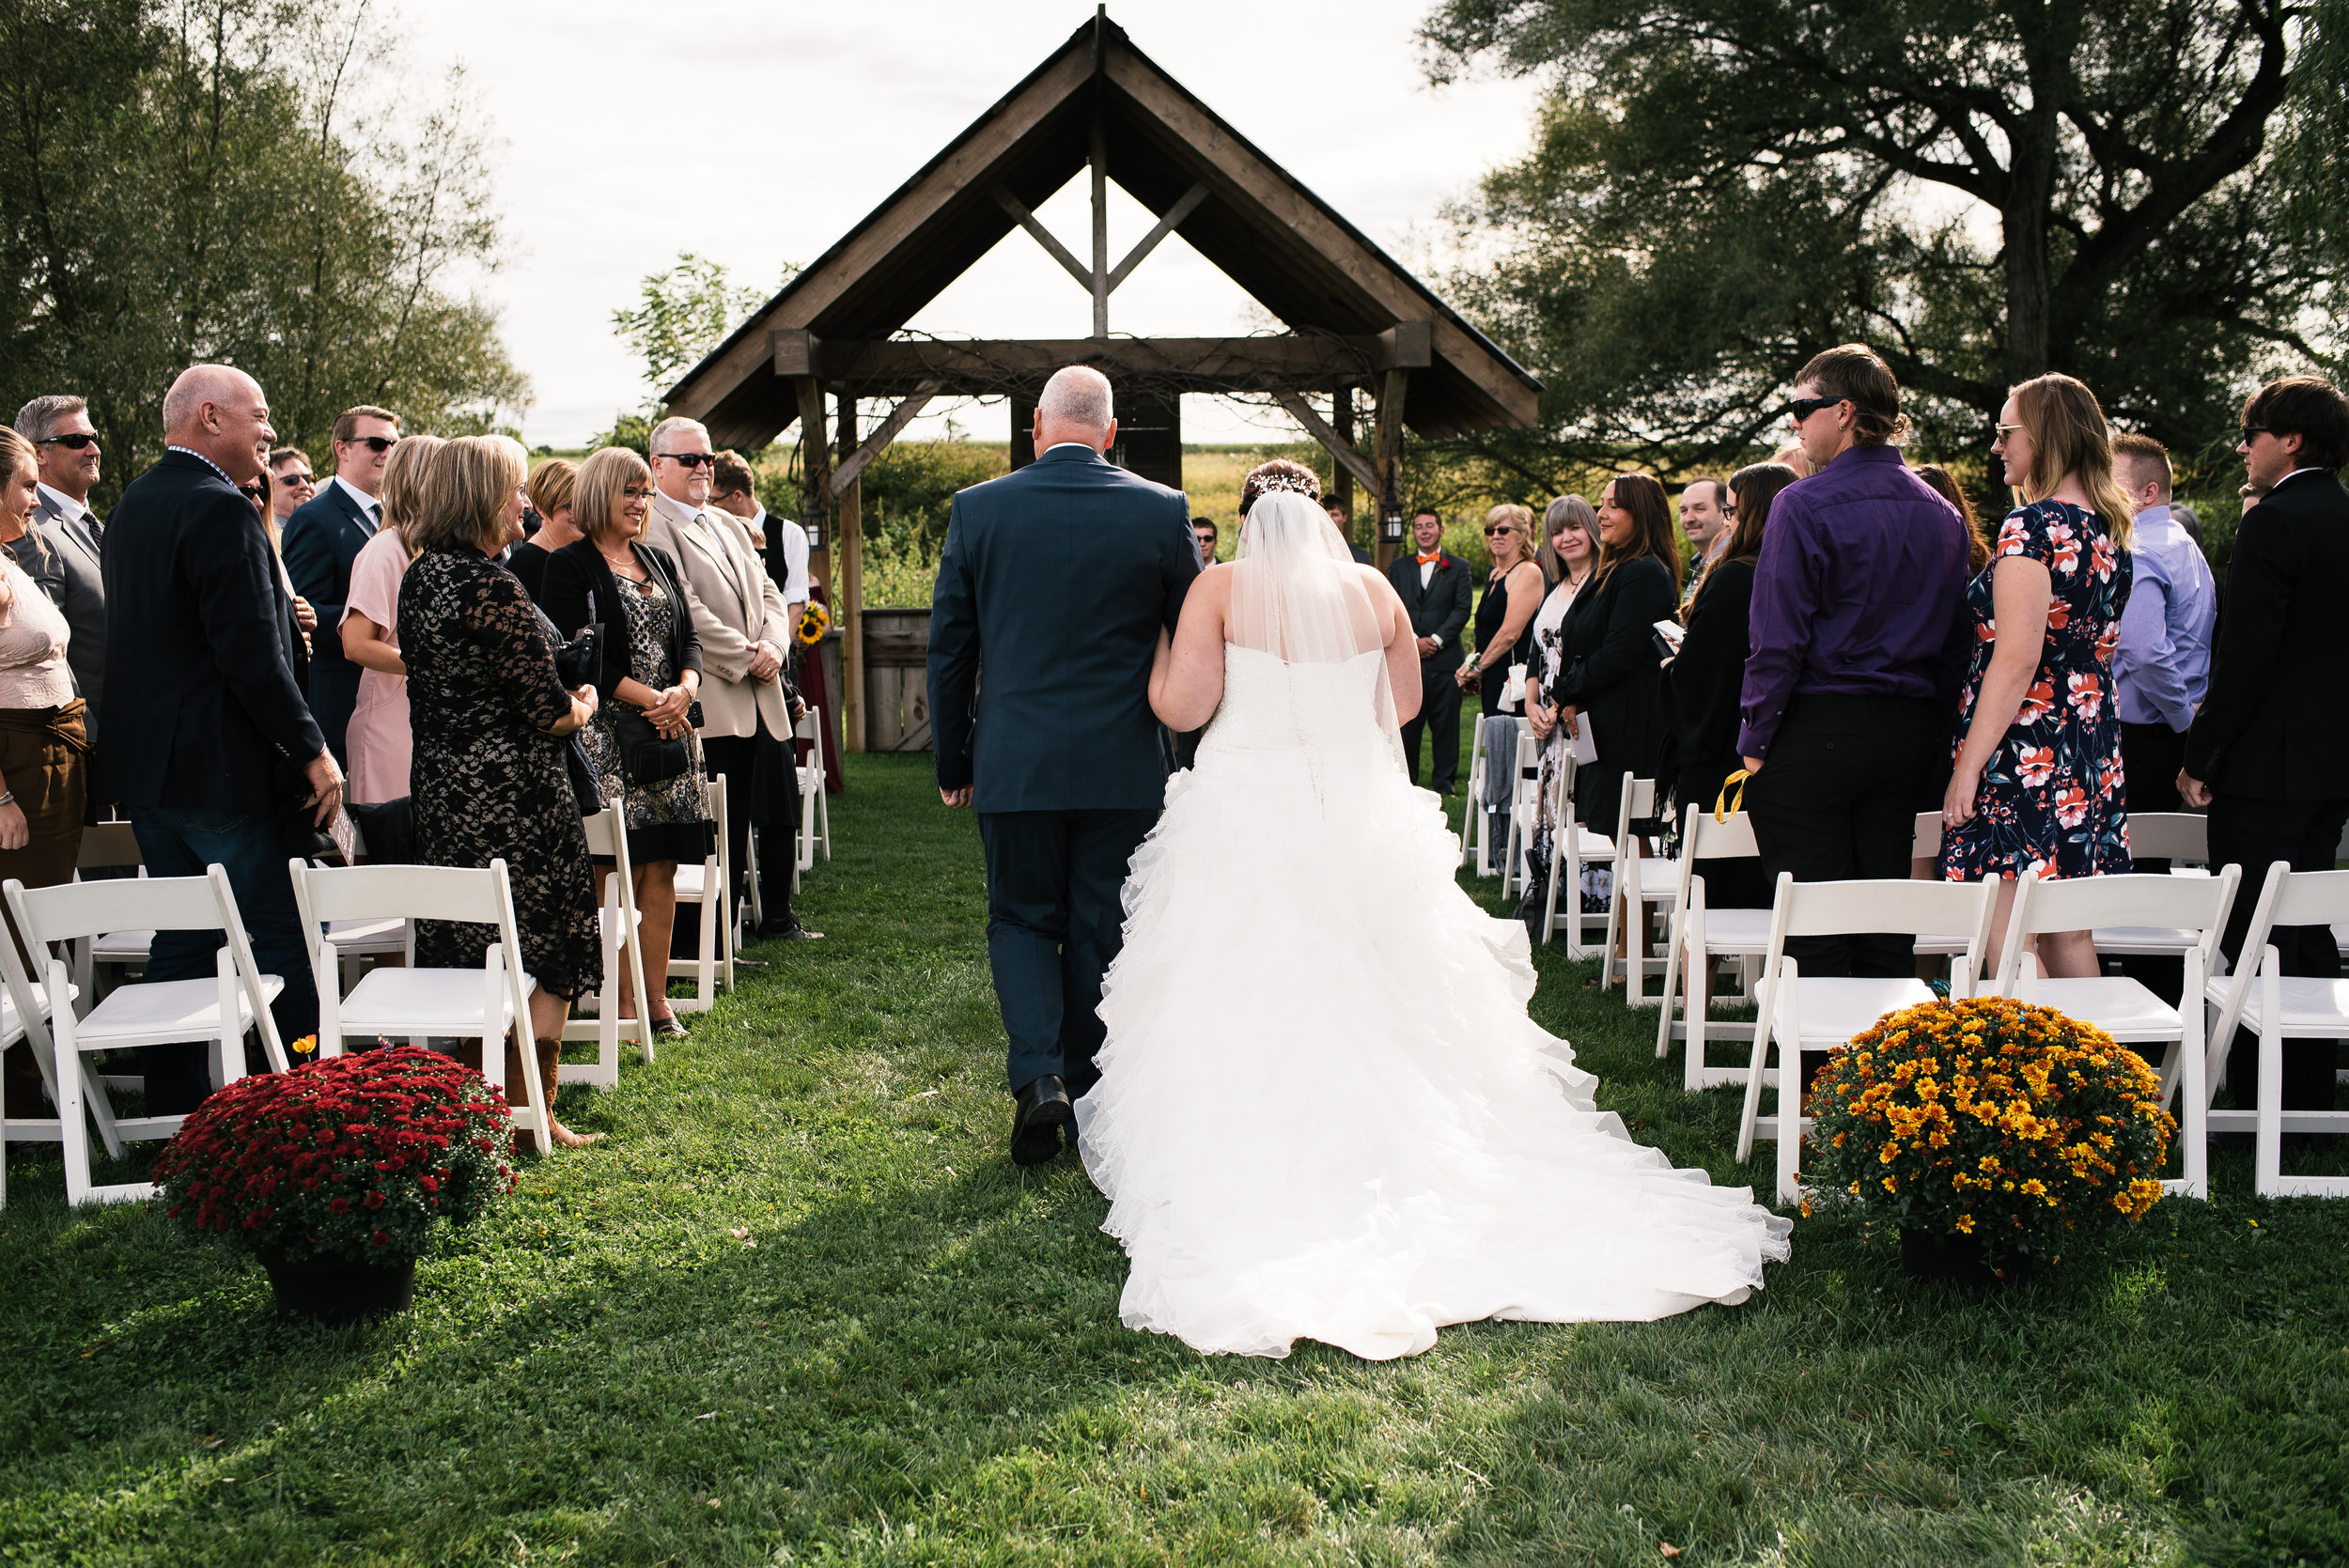 Bride walking down the aisle at Willow Creek Barn Events.